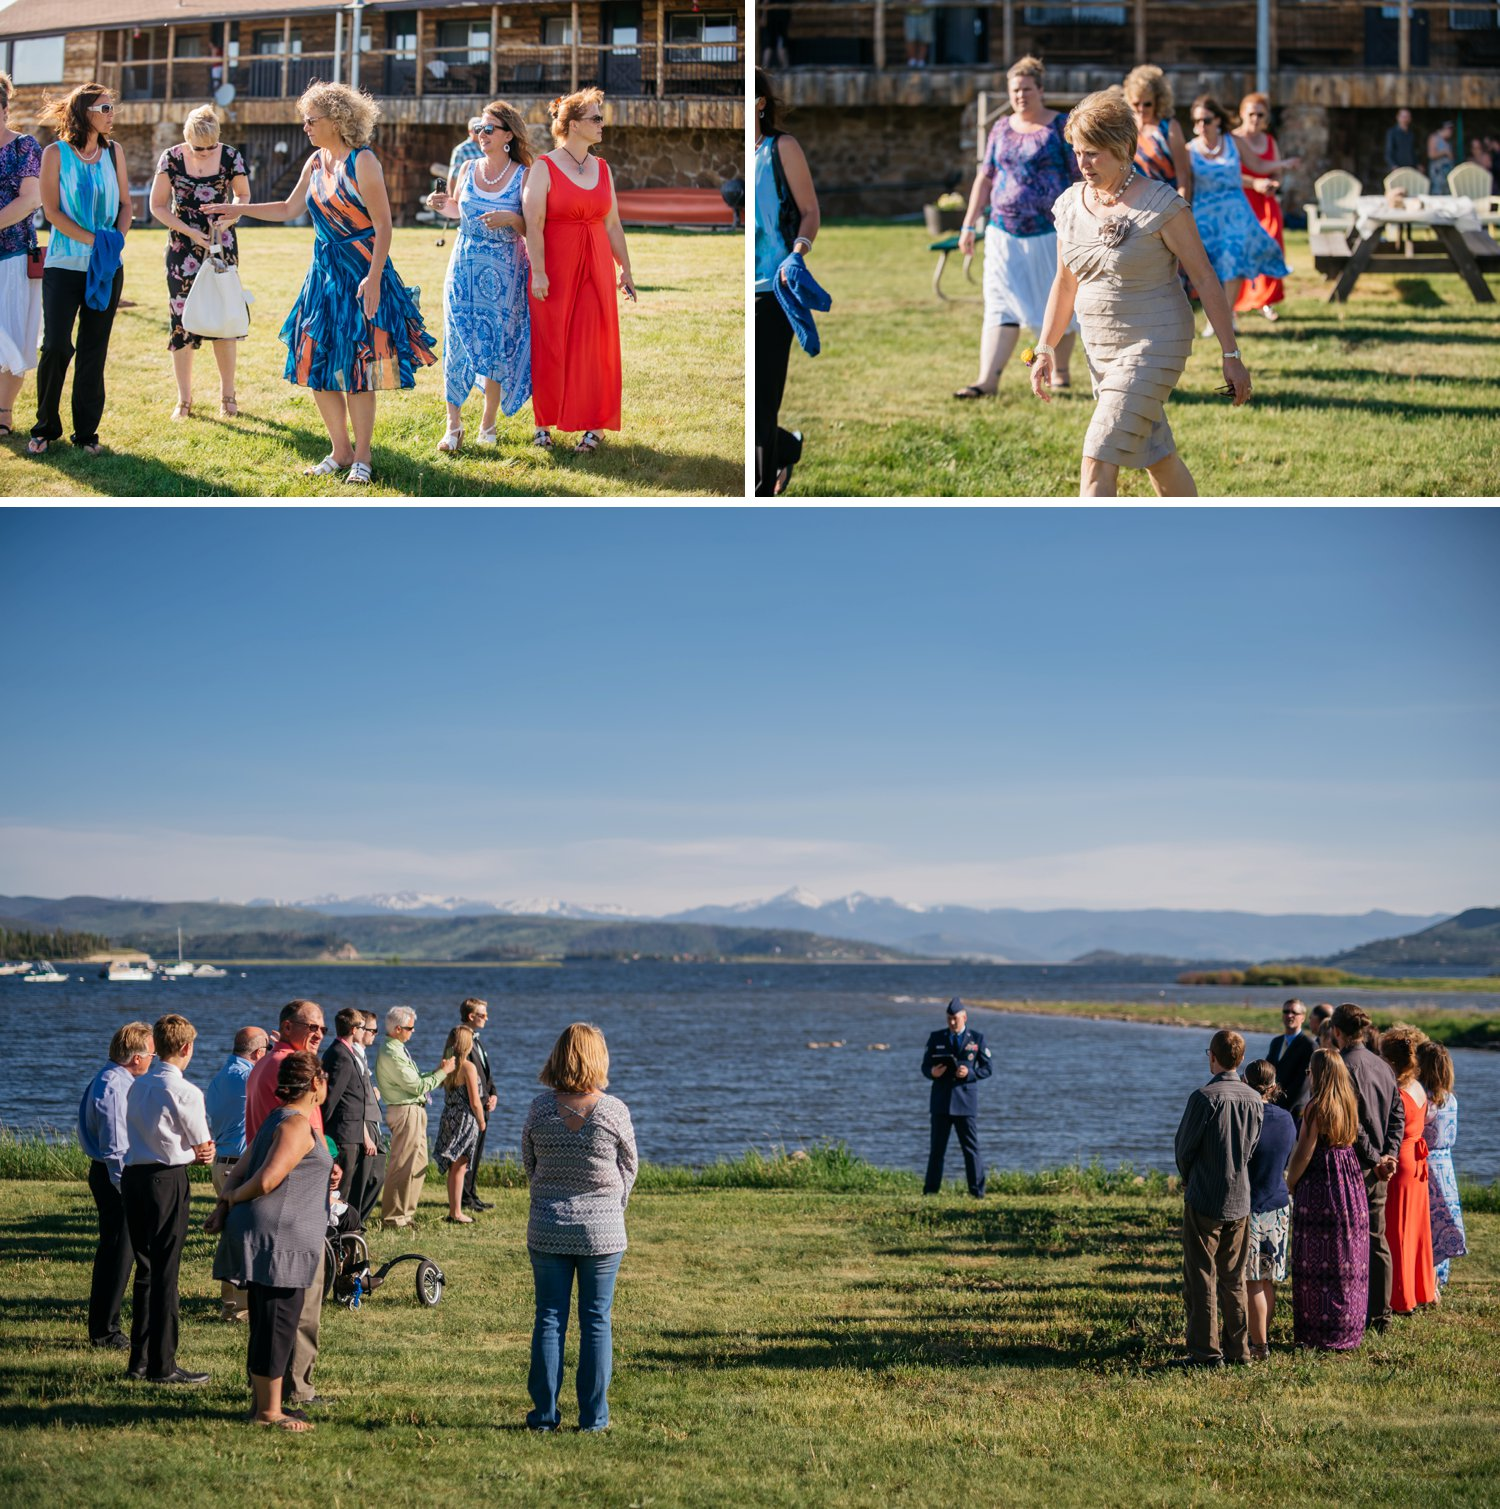 Grand Lake, Colorado wedding - with the ceremony on the edge of the lake overlooking the mountains. Intimate mountain weddings are the best! Photo by Maddie Mae Photography